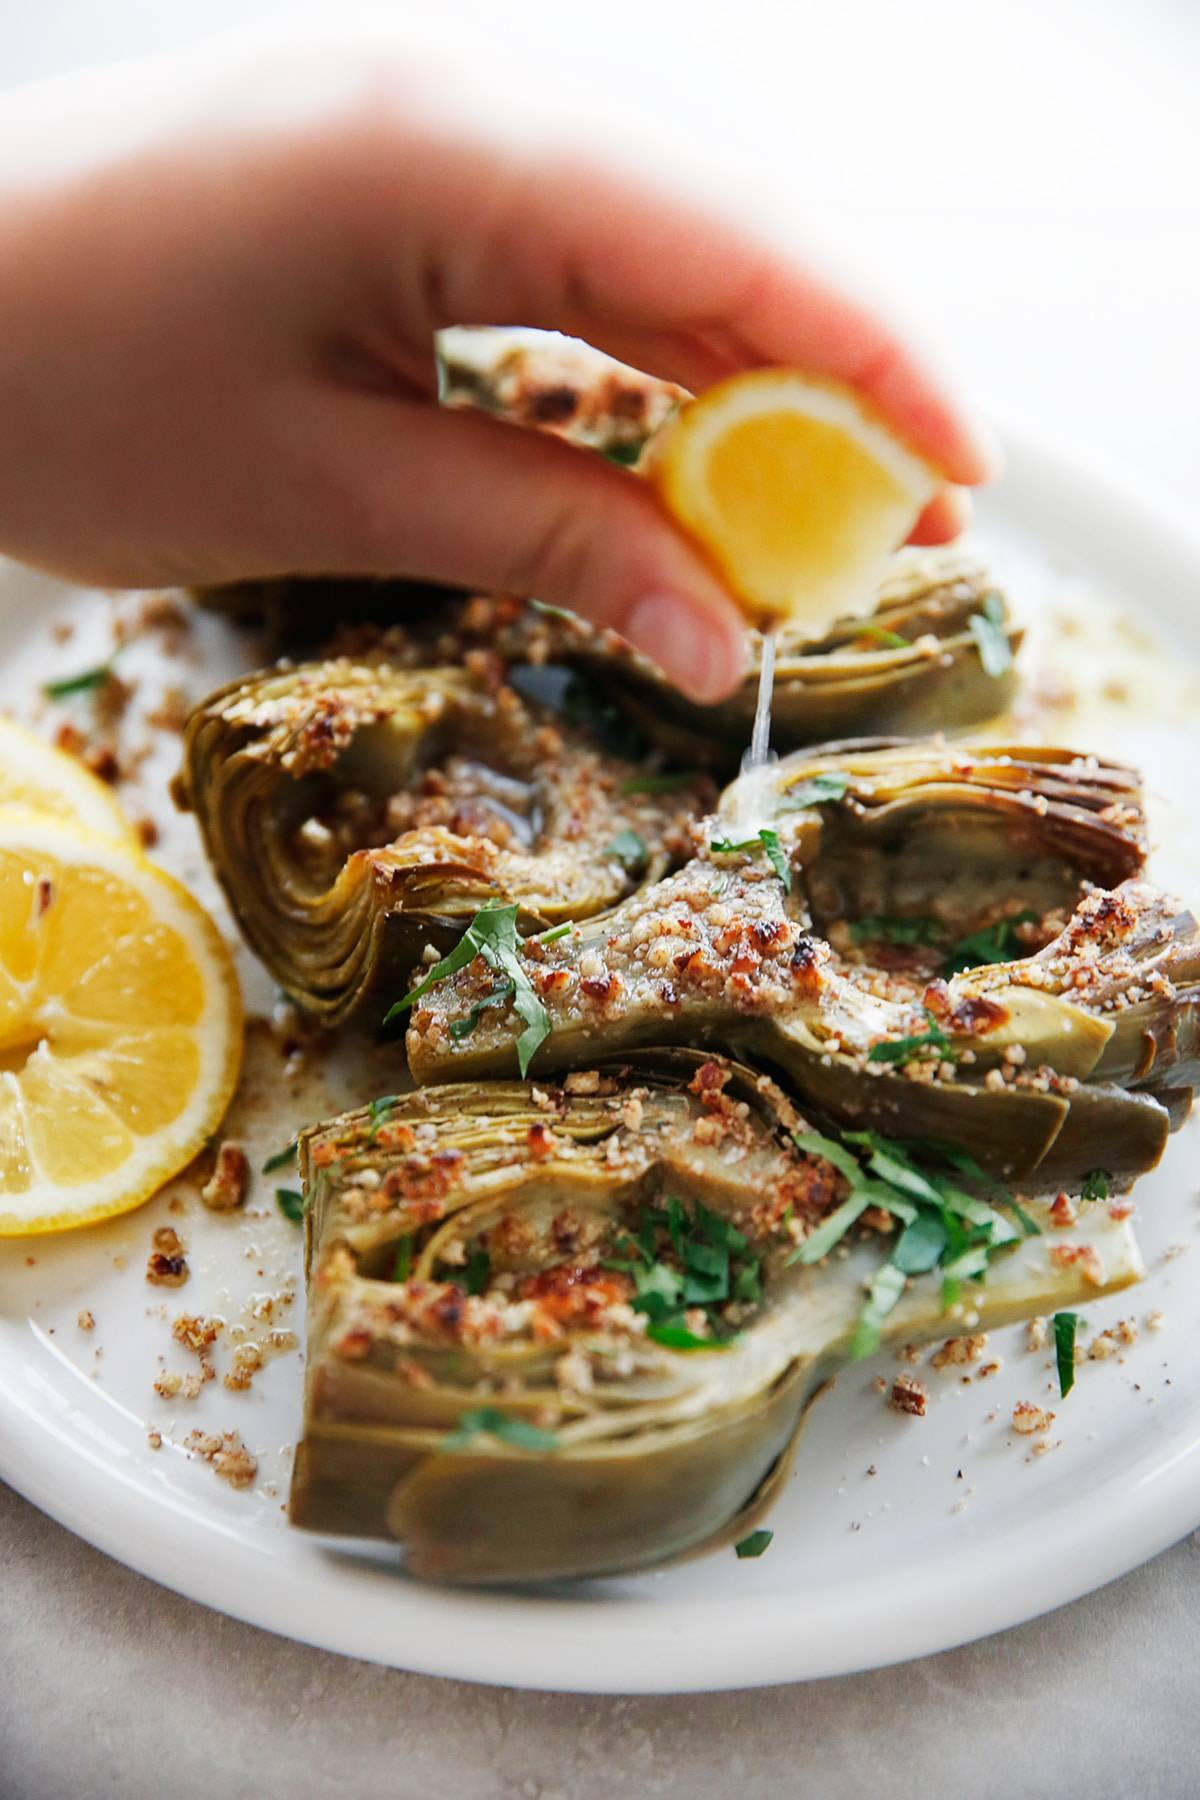 Braised Artichokes with Garlicky Pecan Bread Crumbs